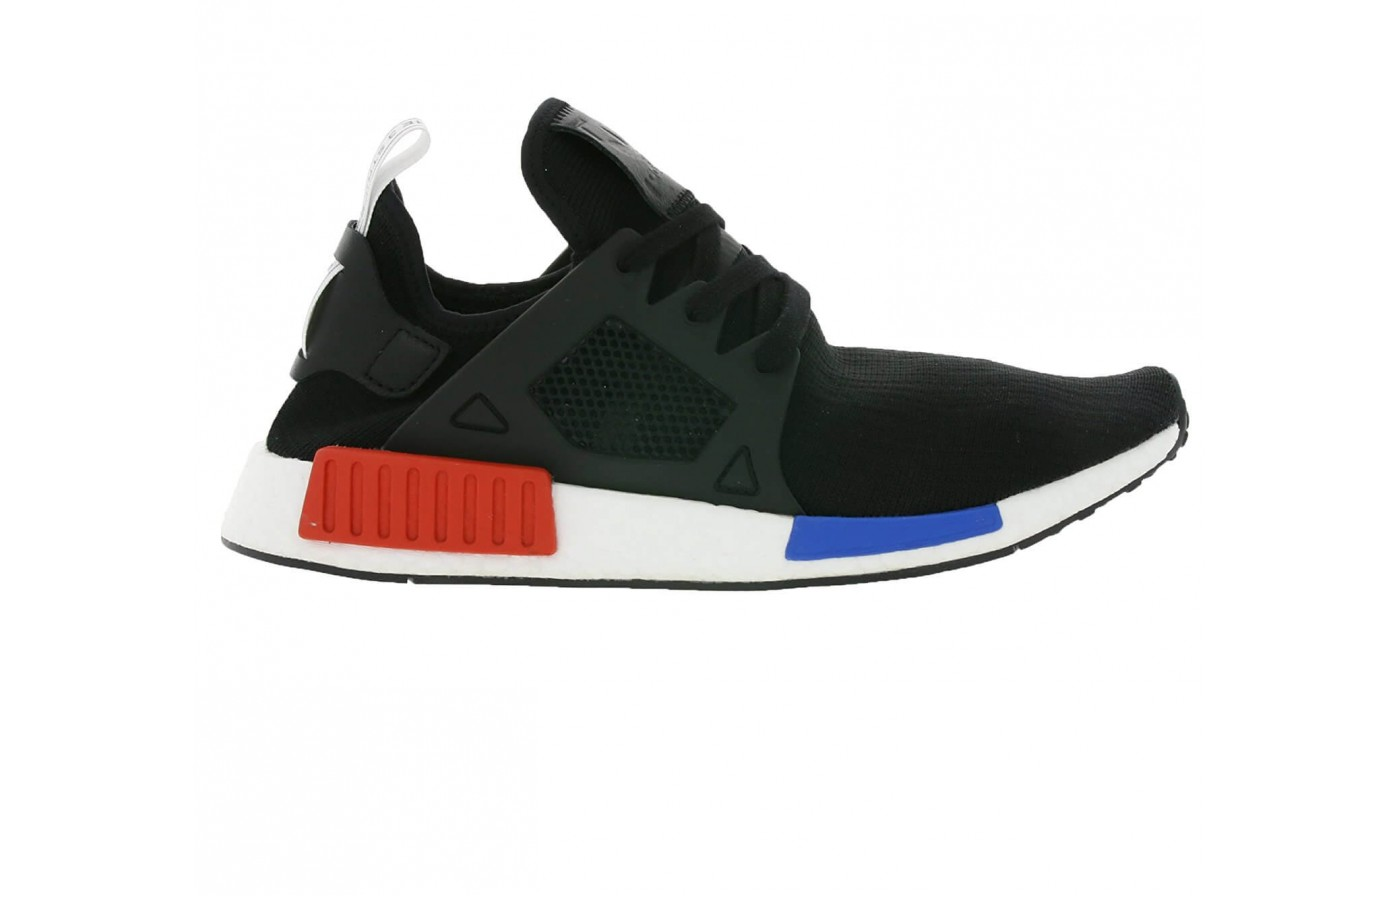 A midfoot cage provides some extra stability for the Adidas NMD XR1.